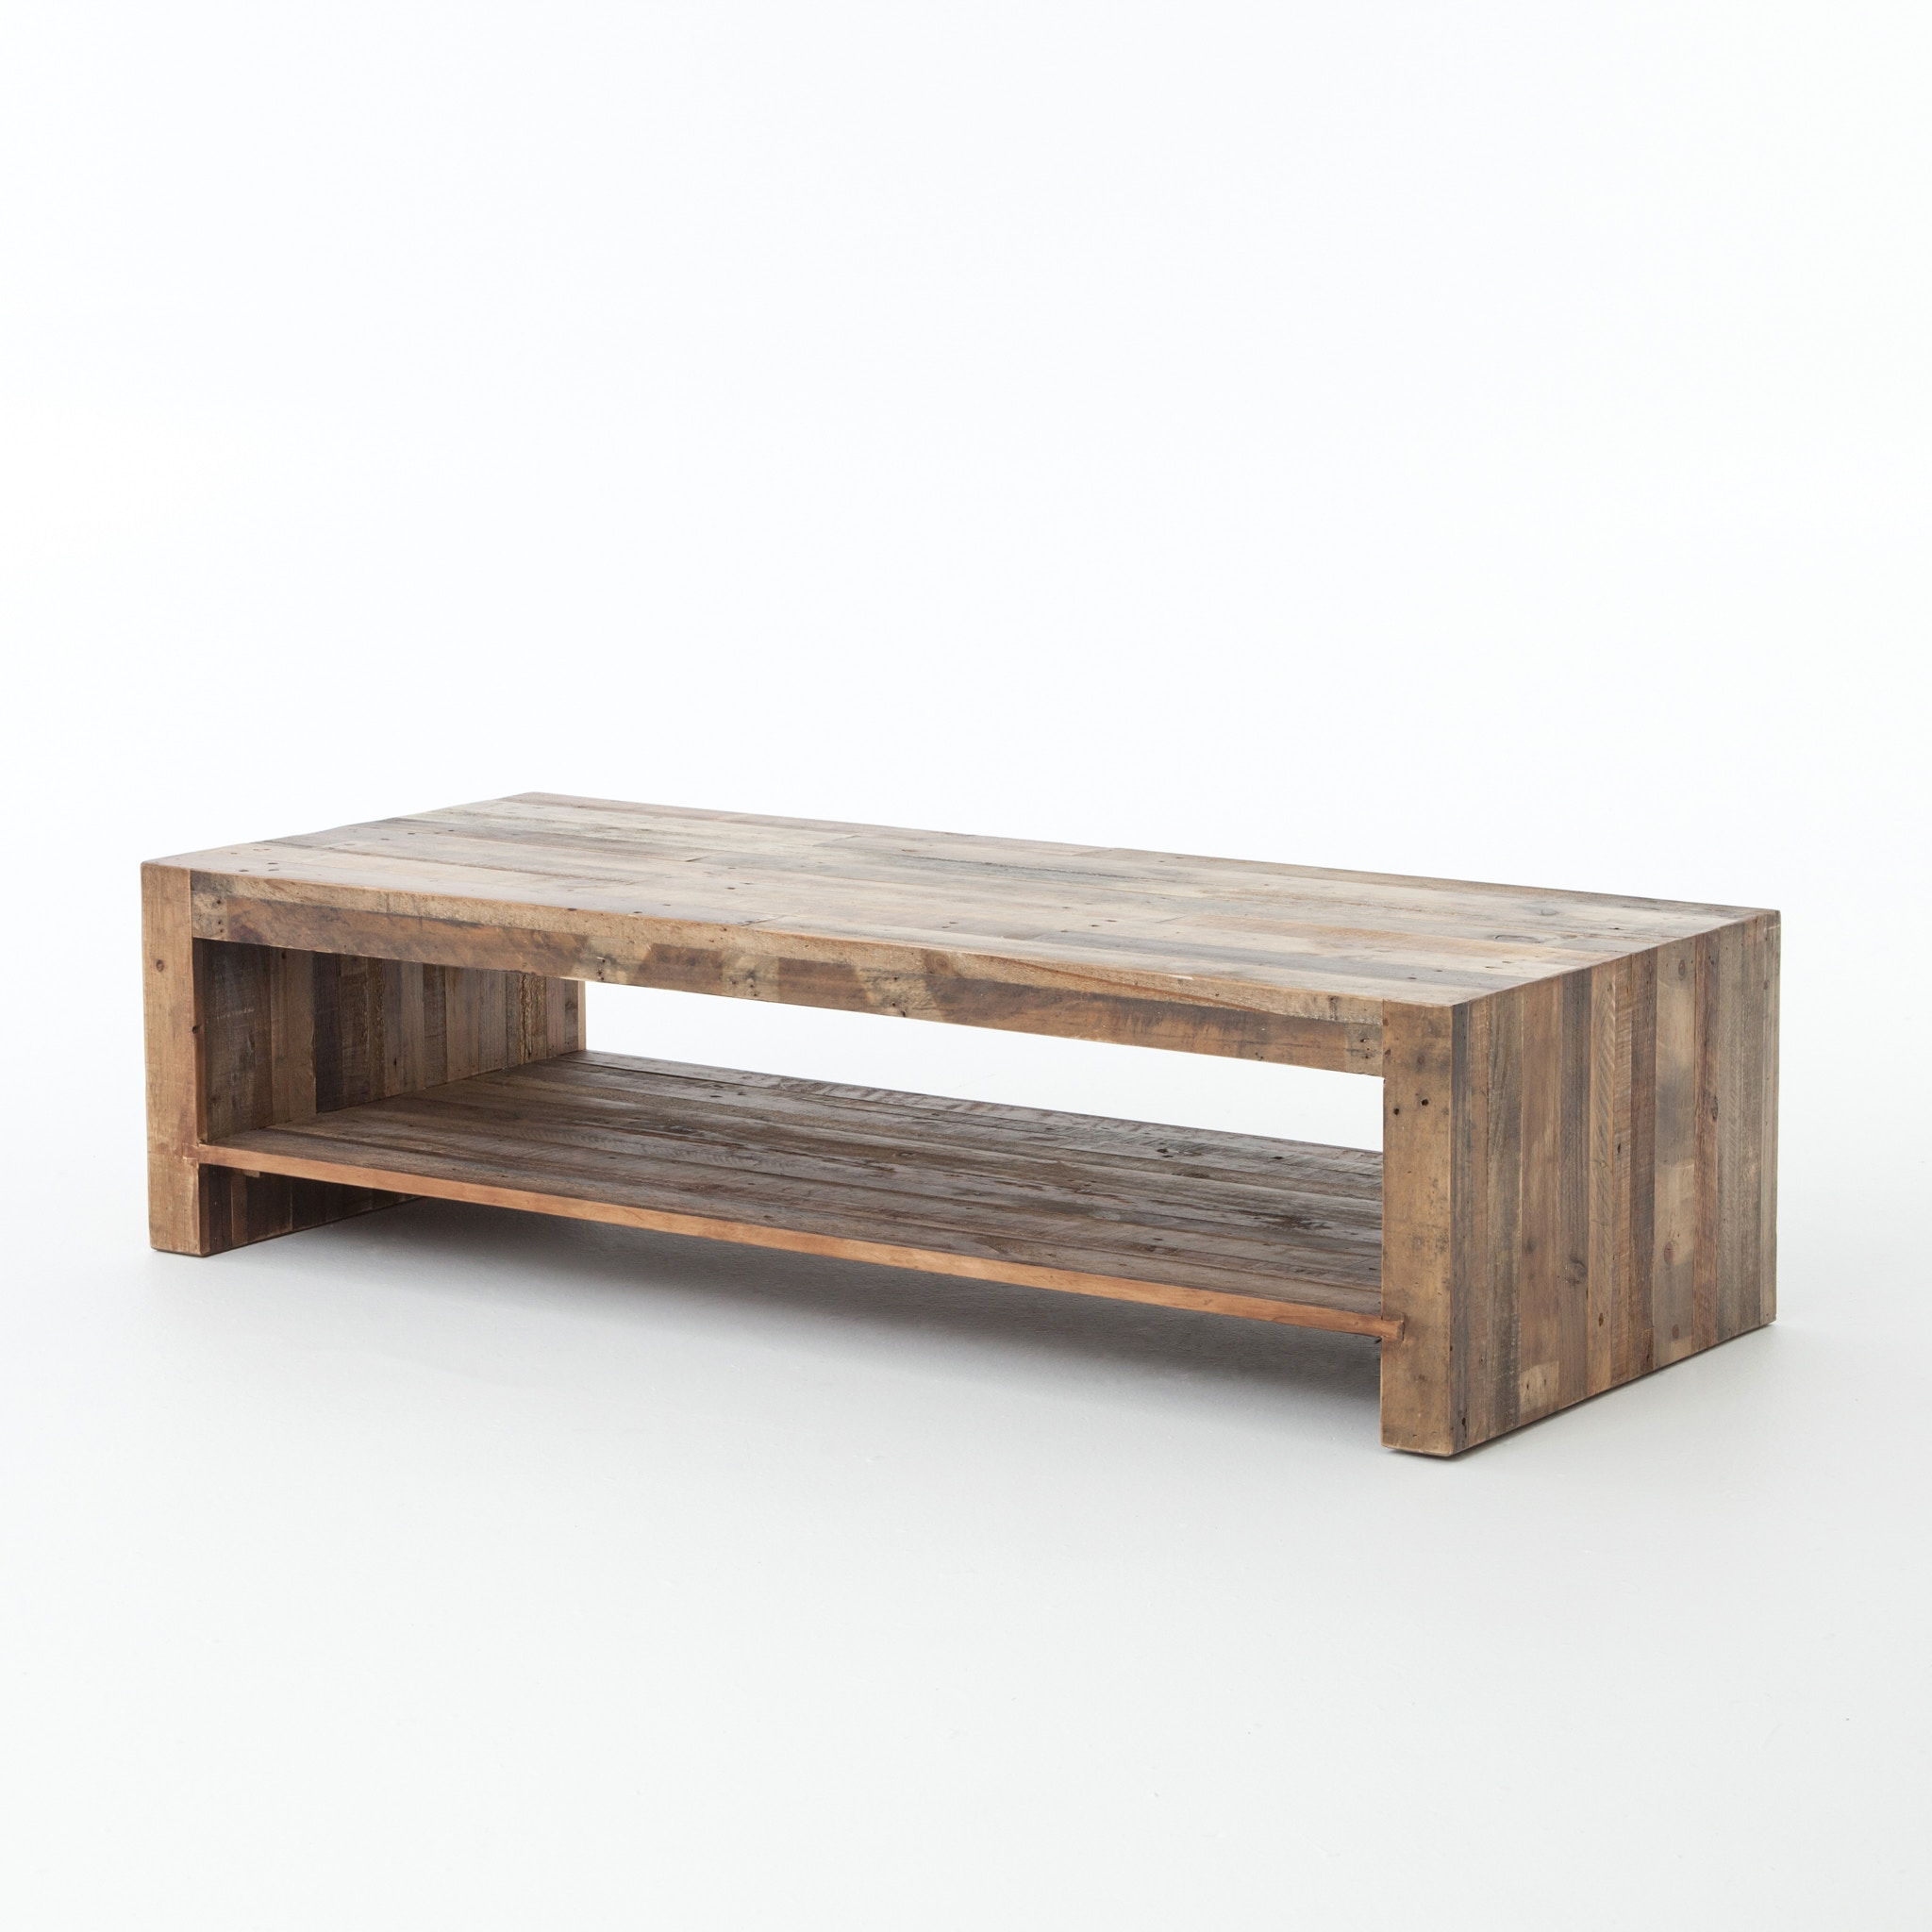 Four Hands Furniture VFH 024 Living Room BECKWOURTH 48 COFFEE TABLE